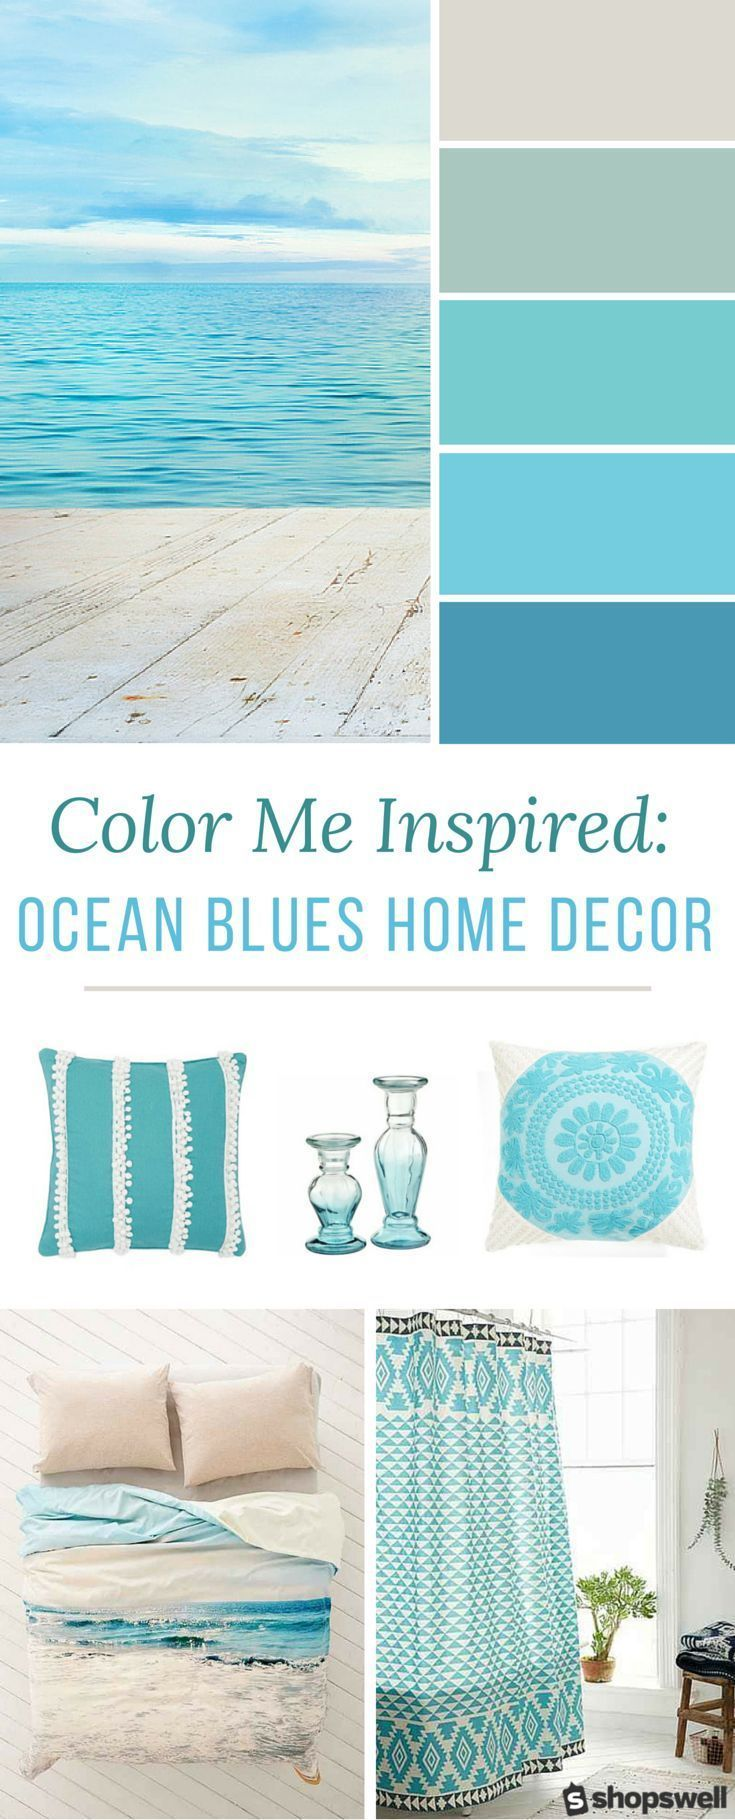 Color Me Inspired: Ocean Blues Home Decor Inspiration